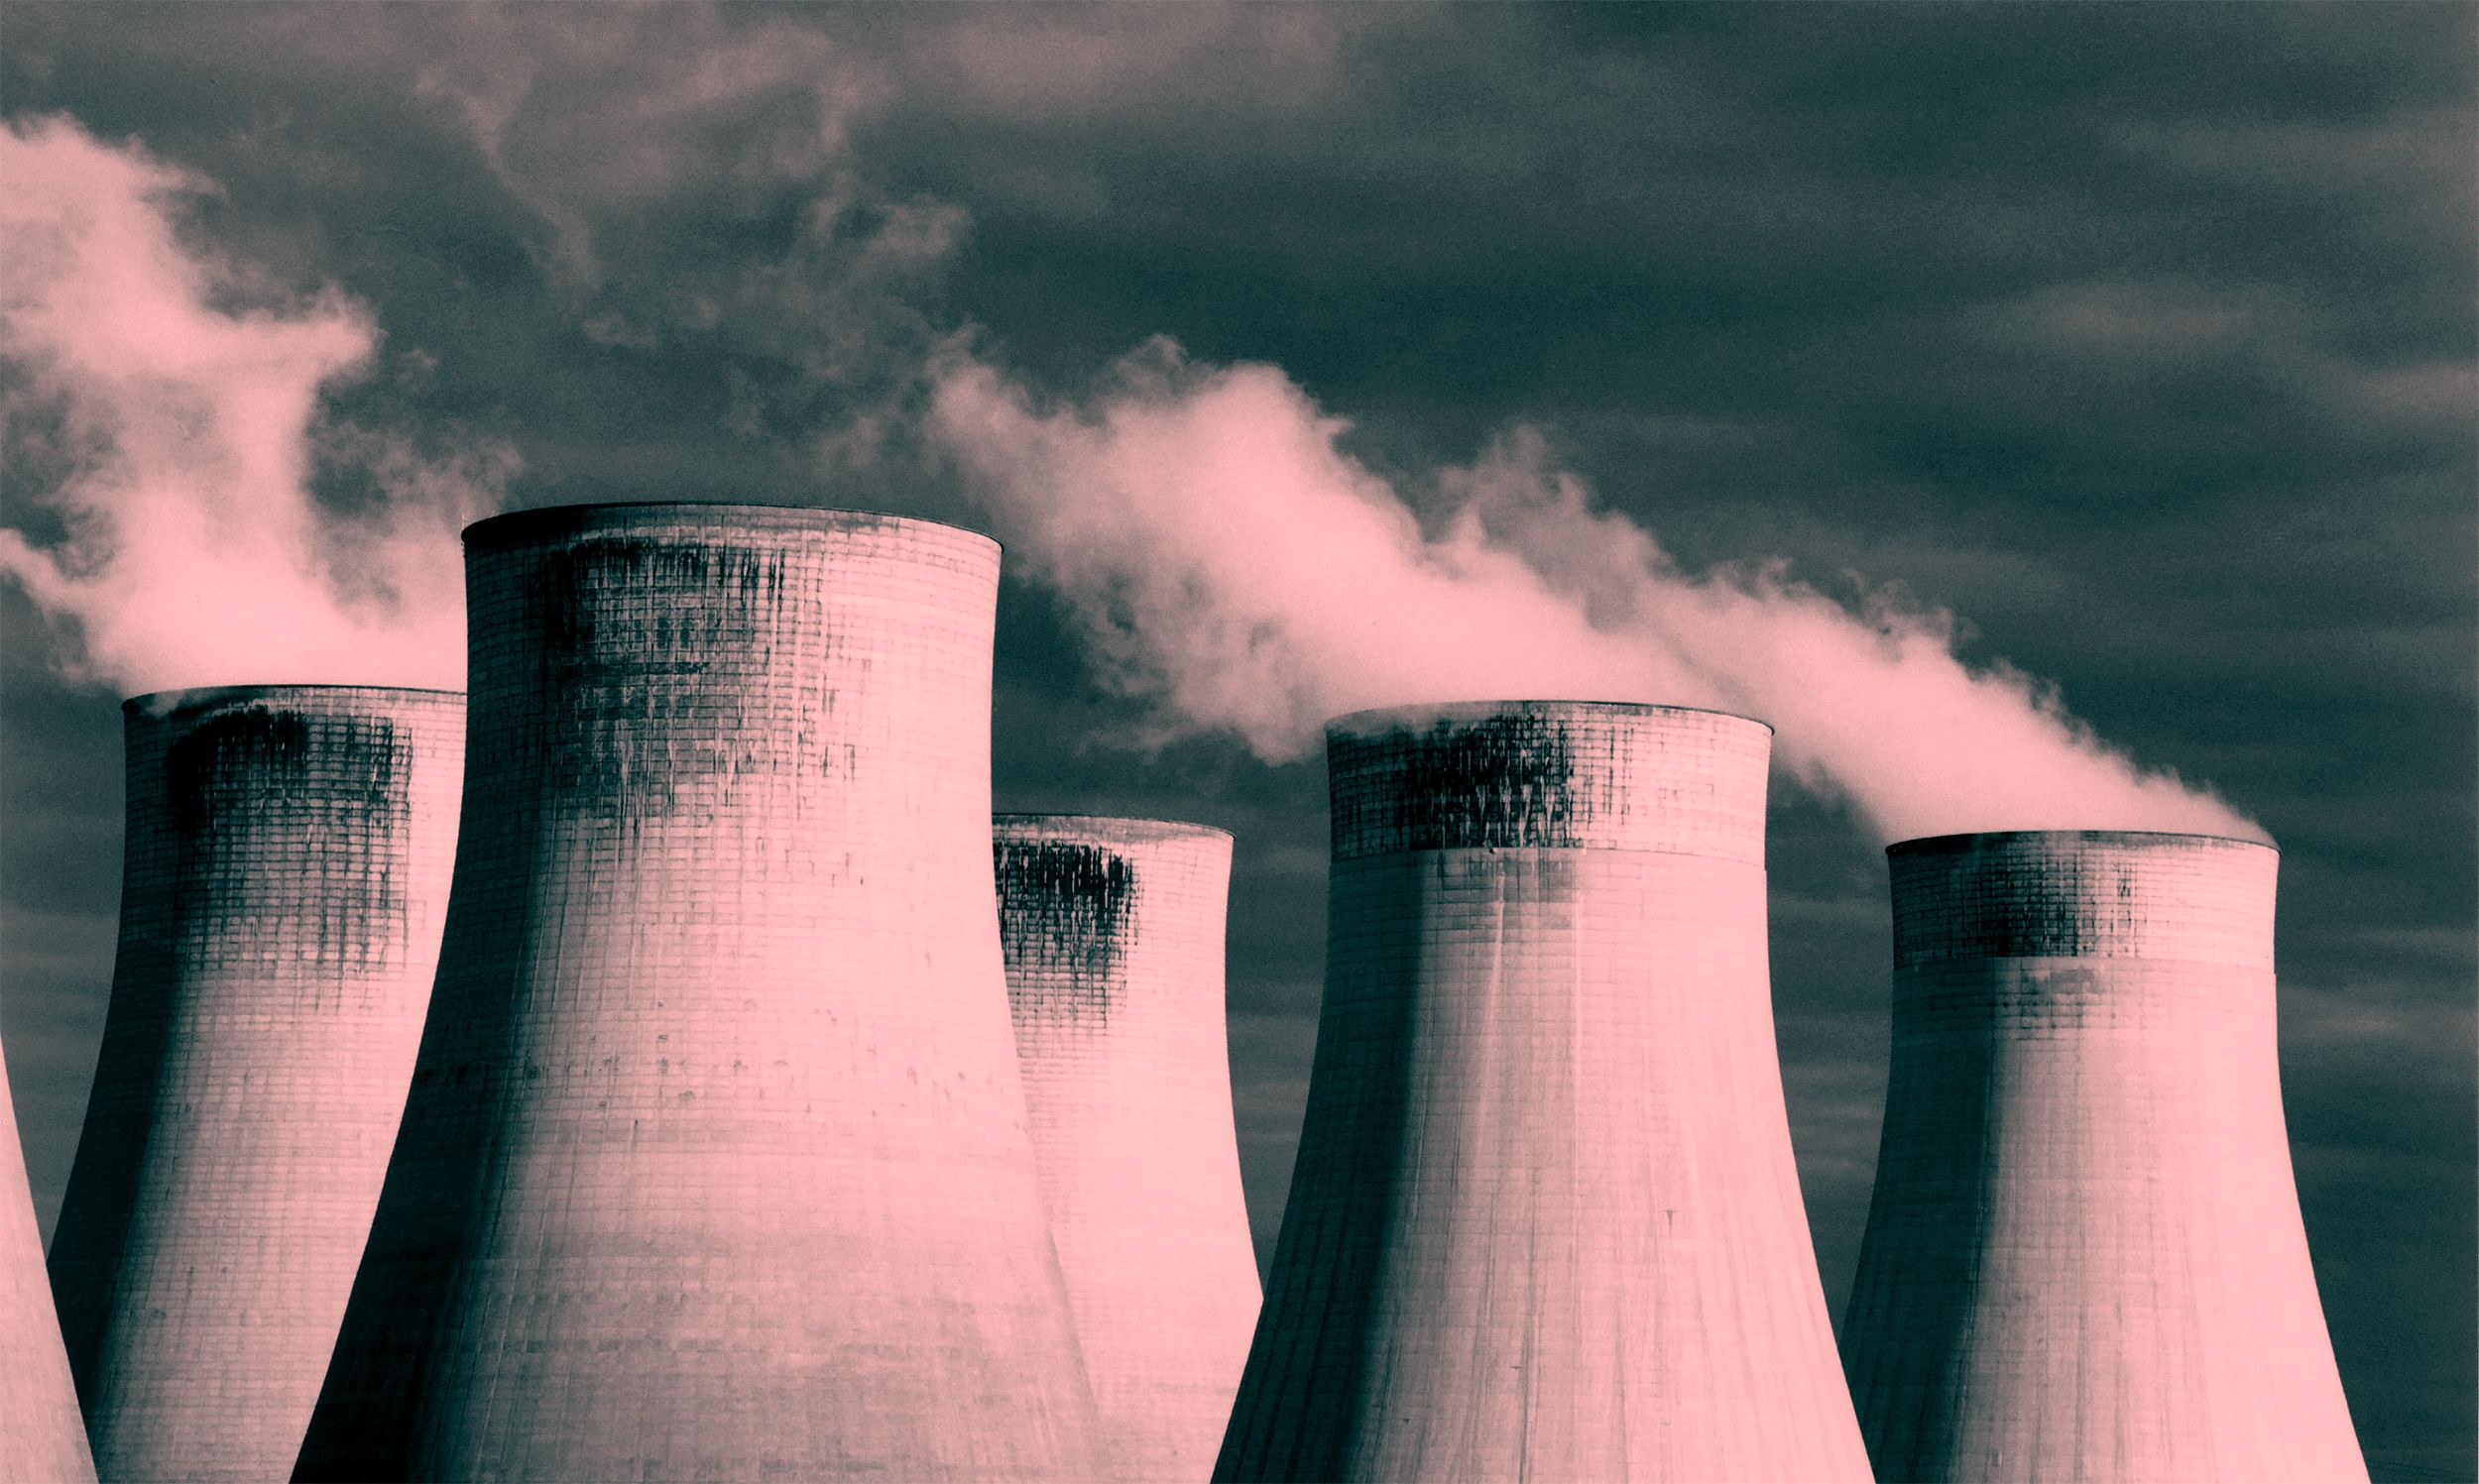 The #1 Thing Preventing Nuclear Development Is Still Public Fear